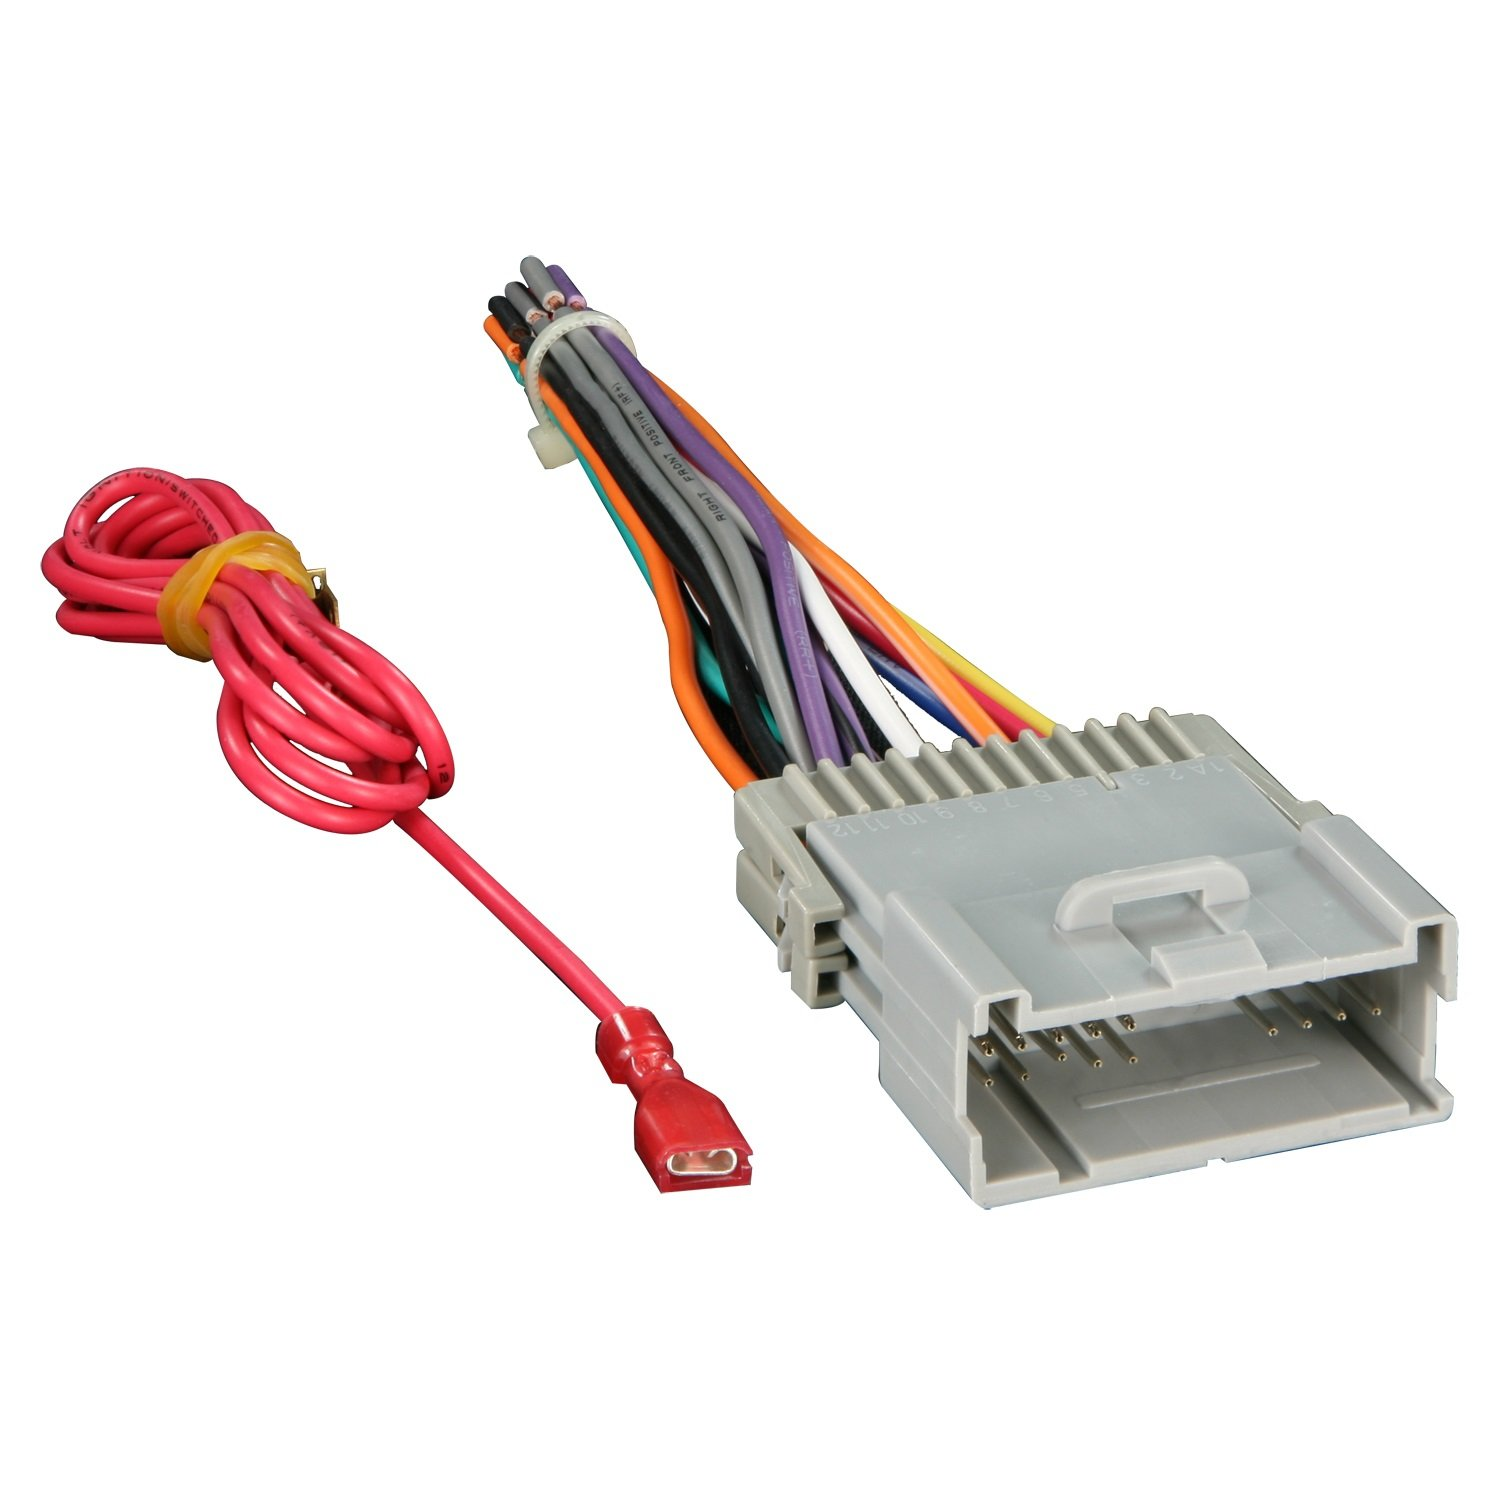 61eewxp9orL._SL1500_ amazon com metra 70 2003 radio wiring harness for gm 98 08 wiring harness connector types at couponss.co